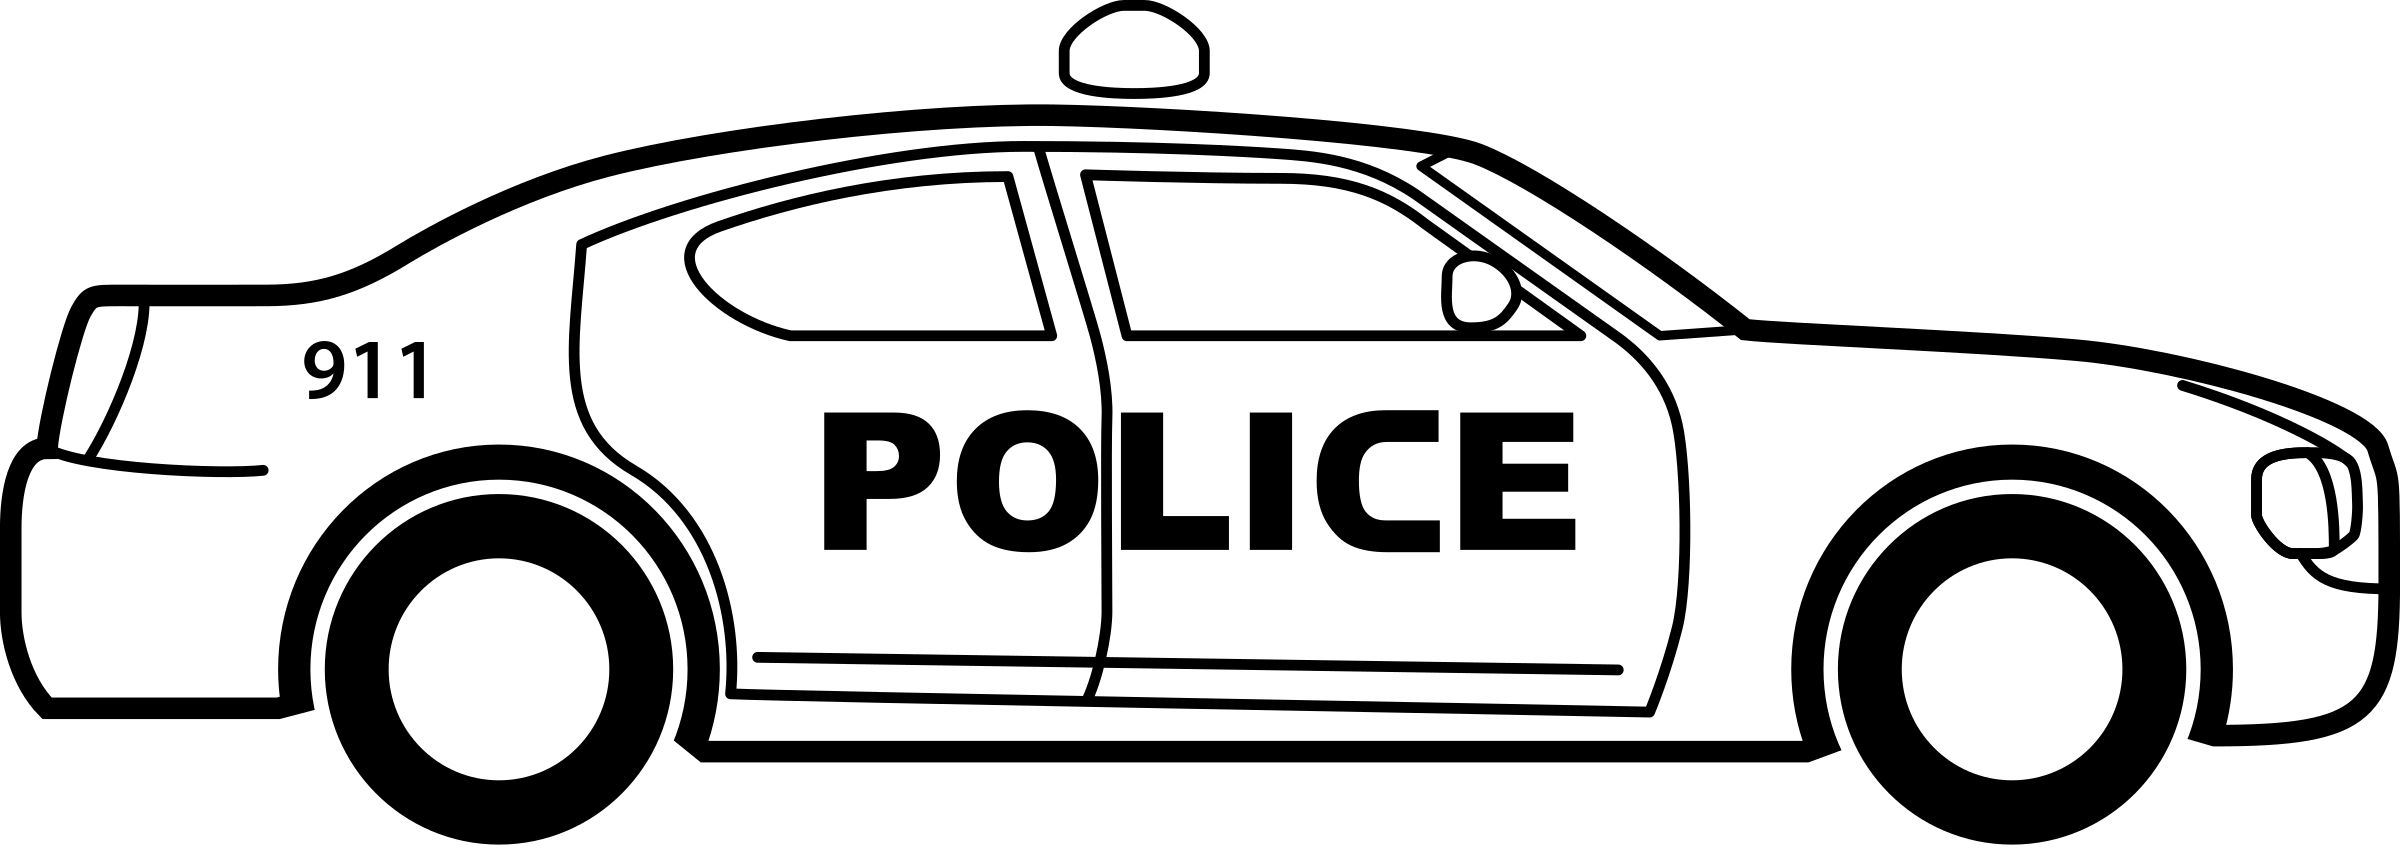 Clipart of police car clipart transparent library Clipart - Police Car clipart transparent library